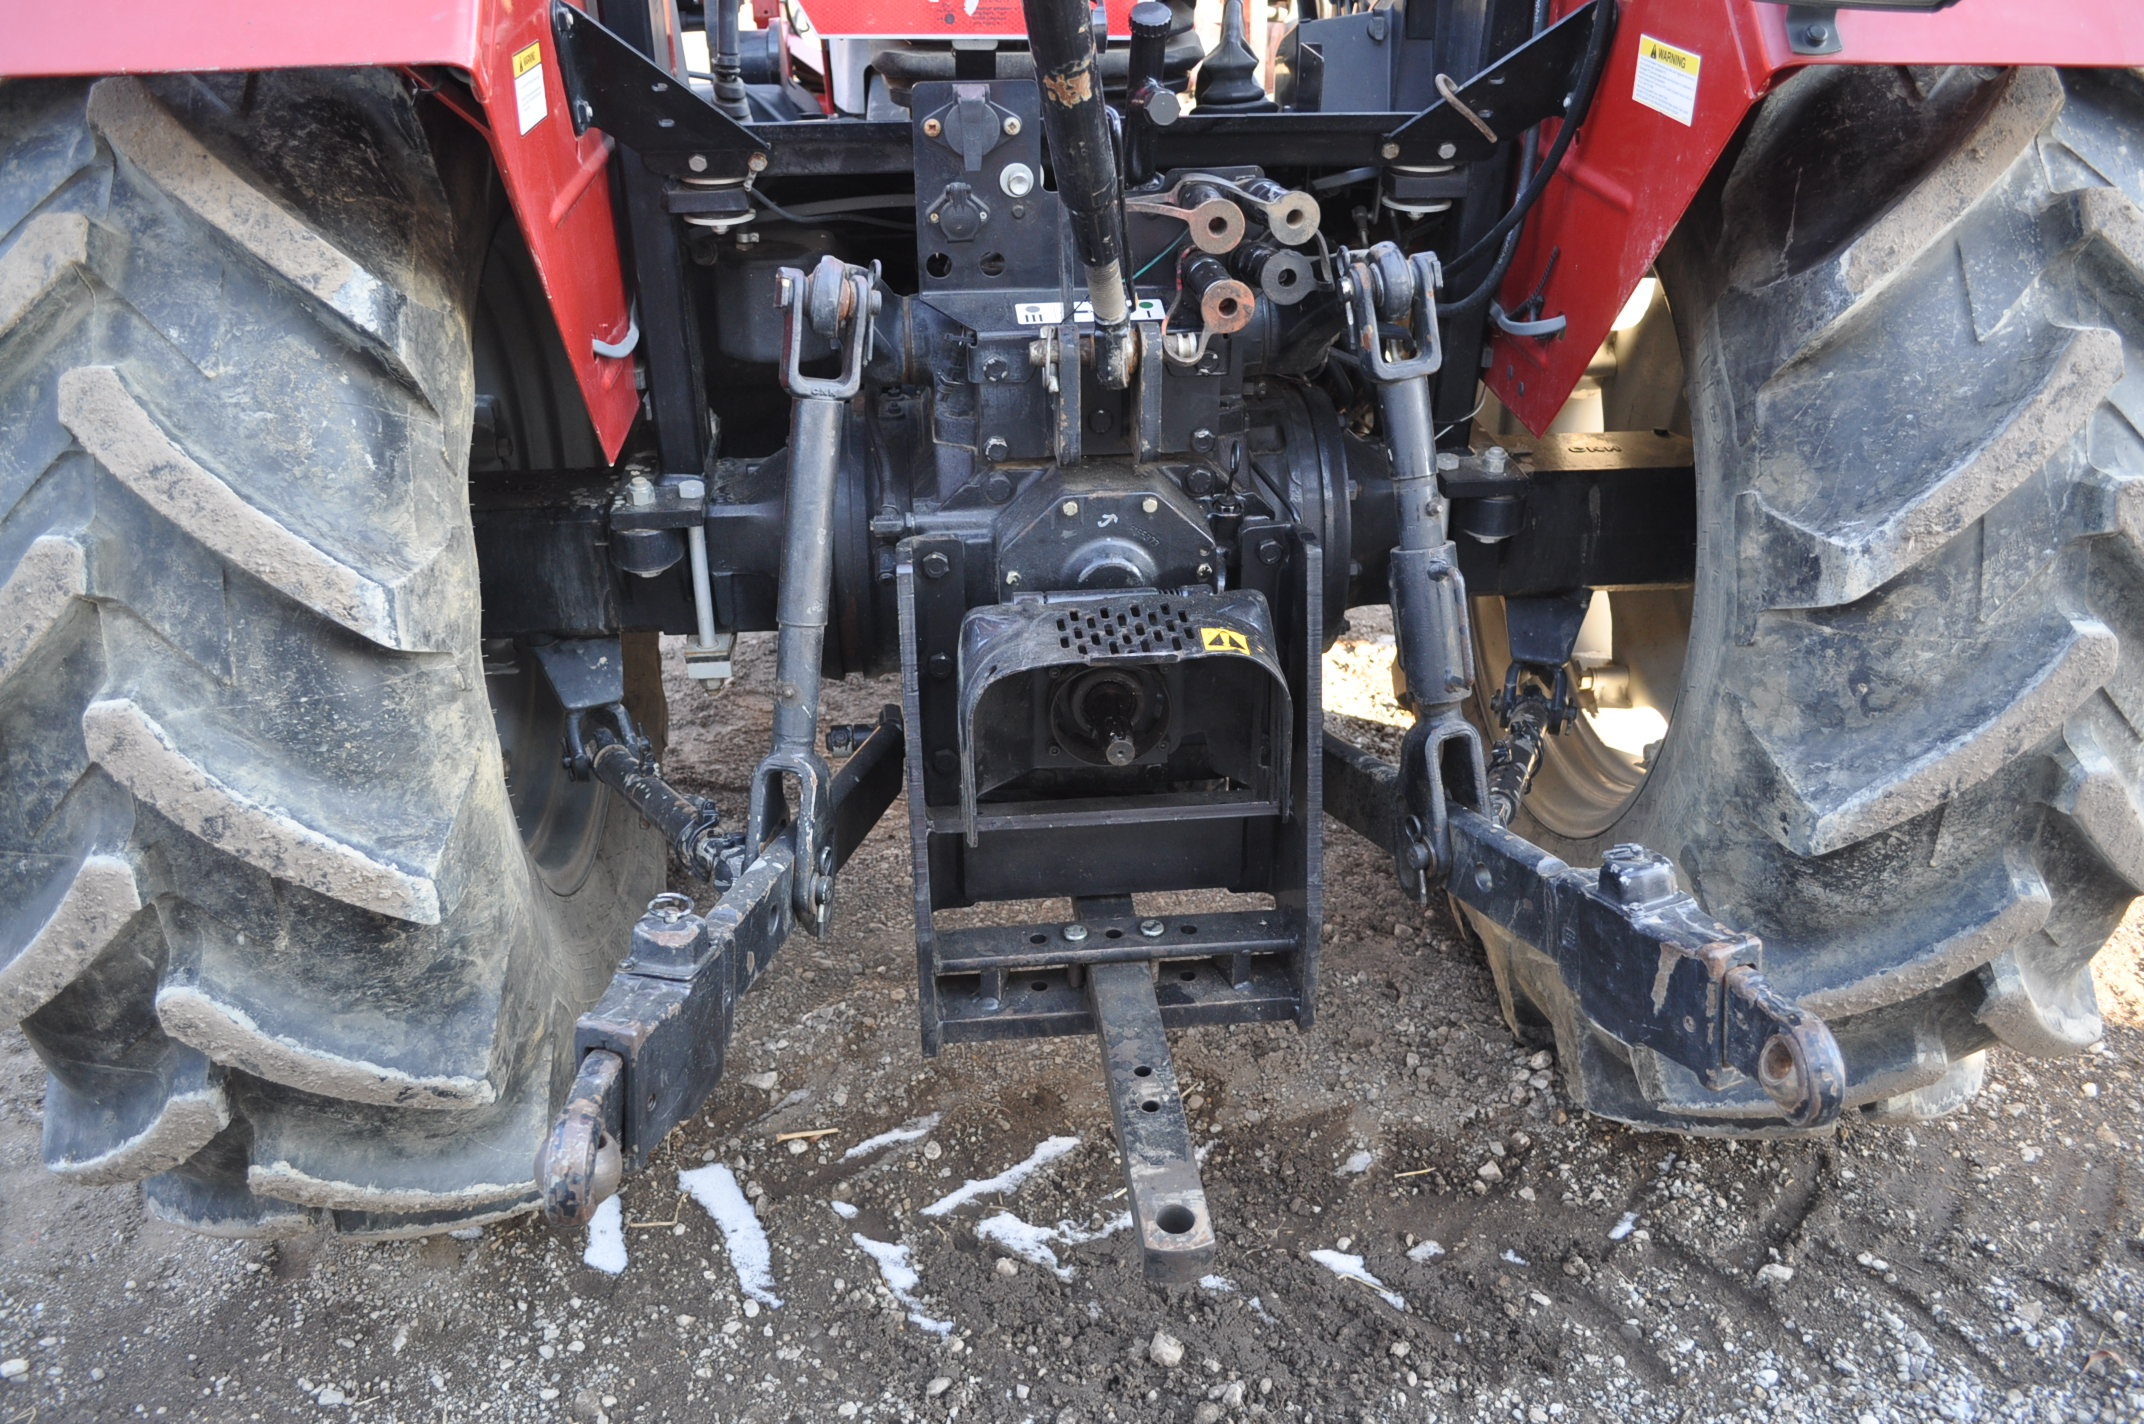 Case IH 85U Farmall MFWD tractor, 18.4R30 rear, 12.4R24 front, open station, mechanical shuttle - Image 11 of 16